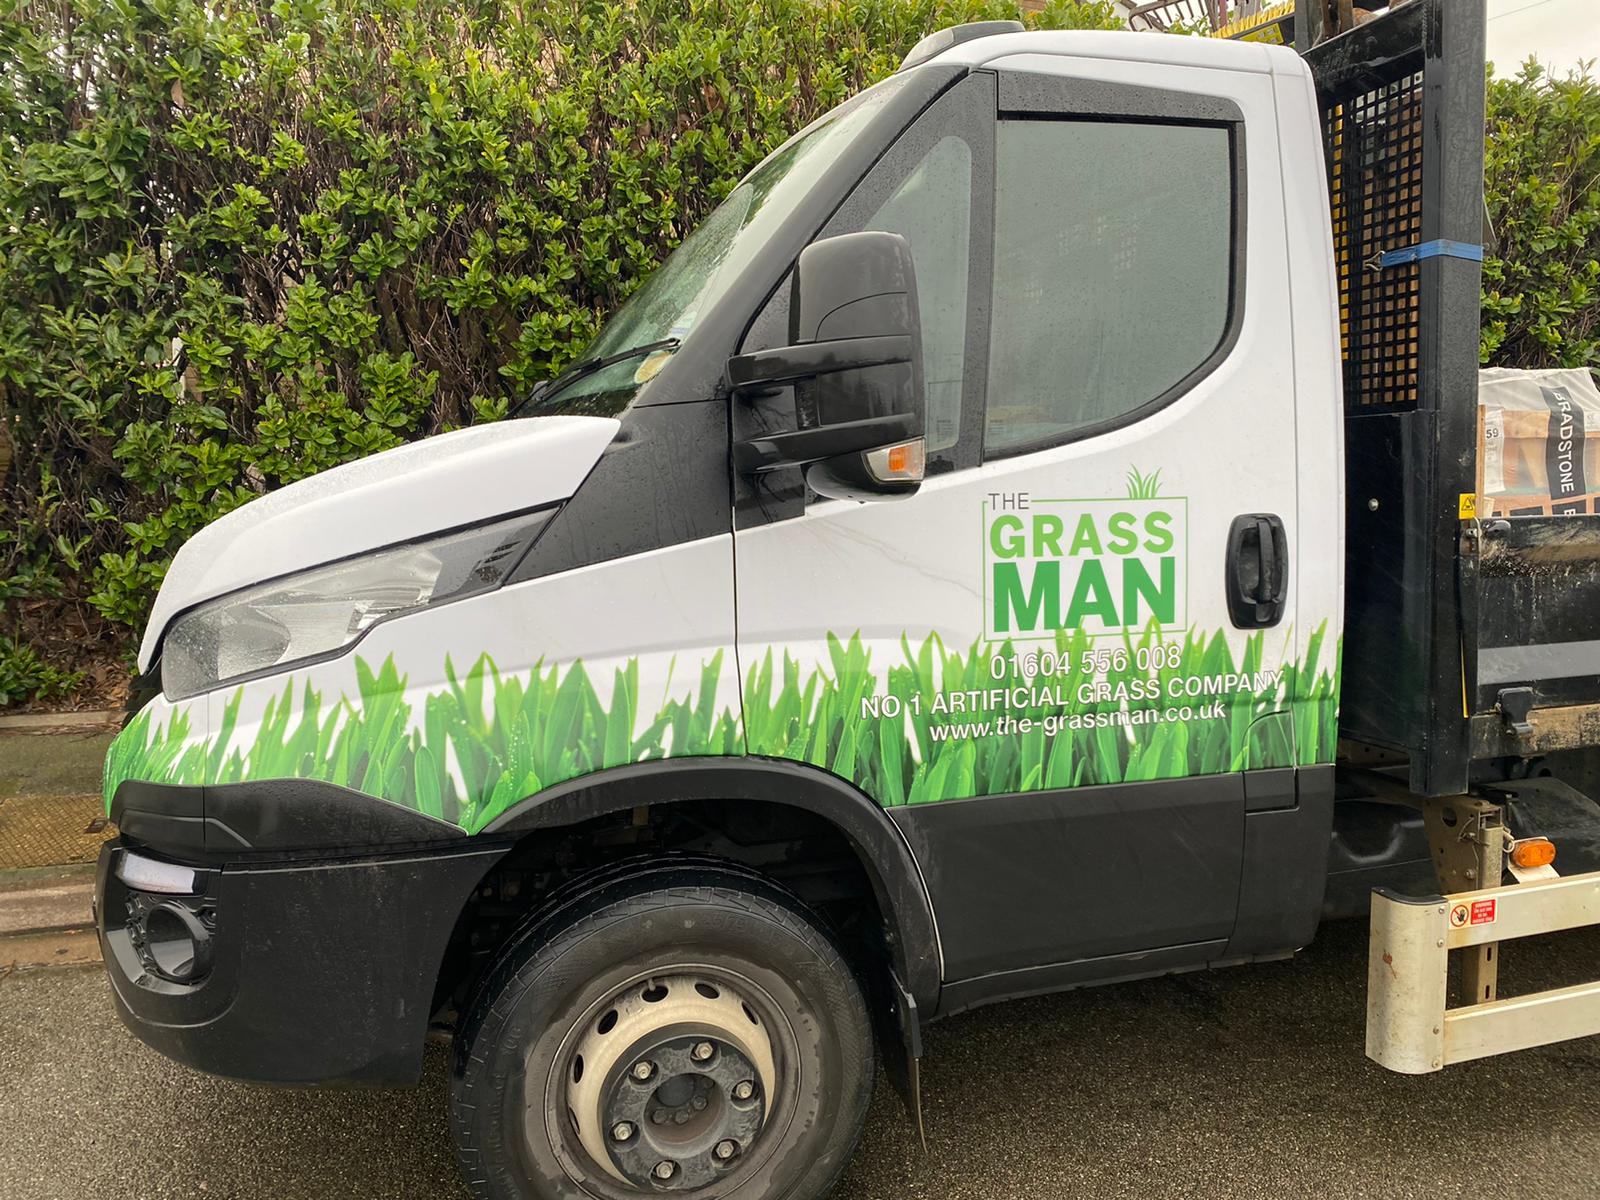 about the grassman.co.uk